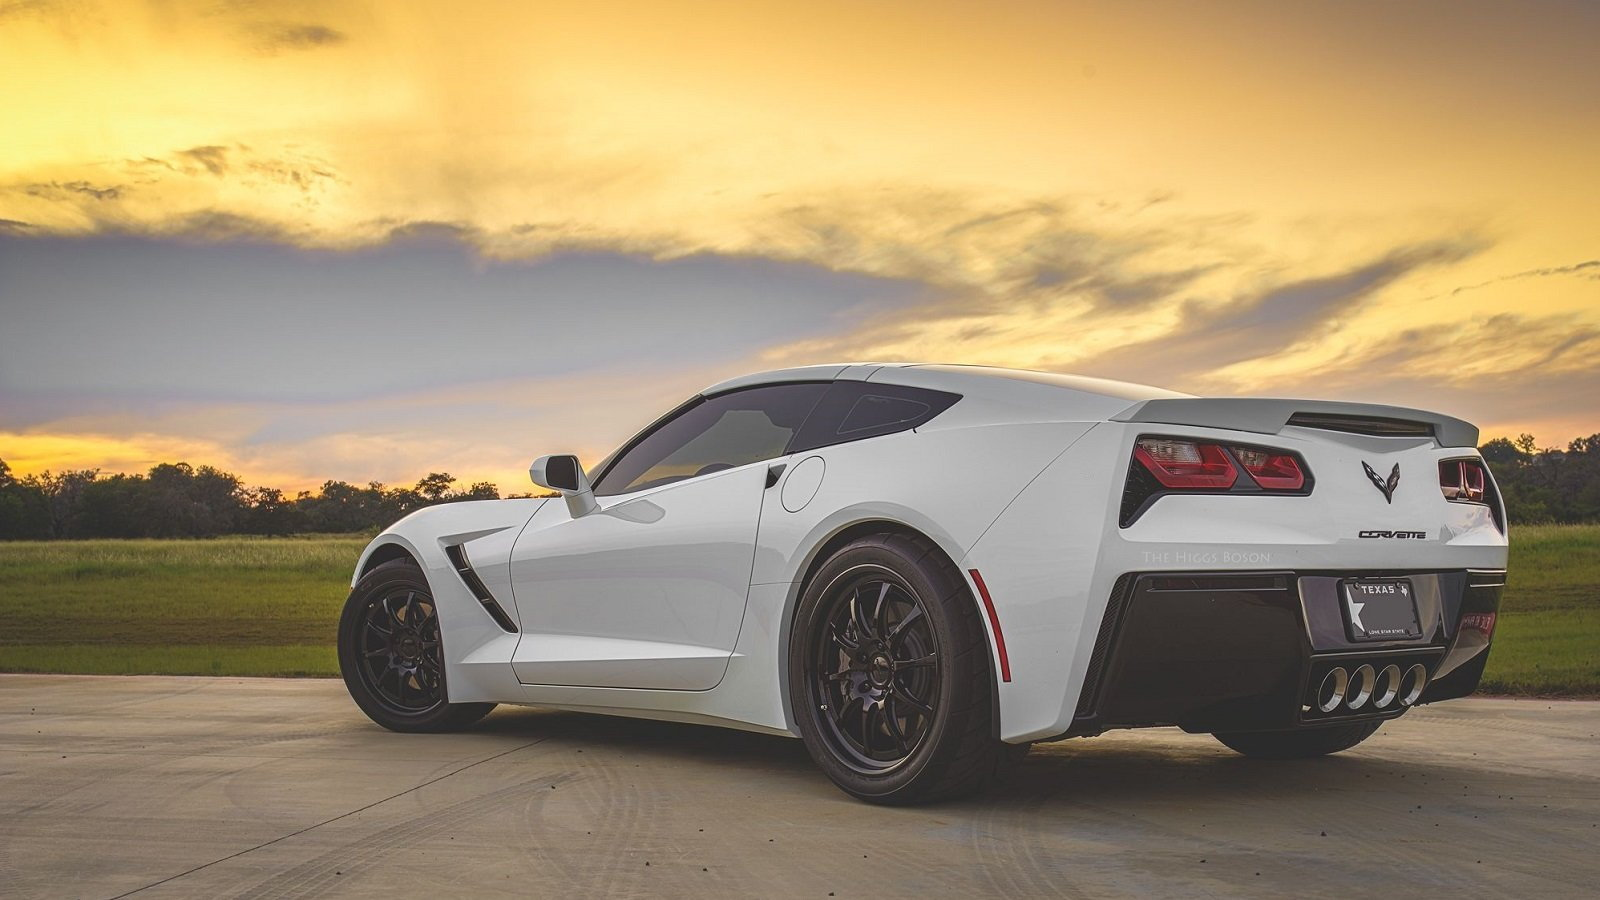 Why Your Corvette Should Be Your Daily Driver